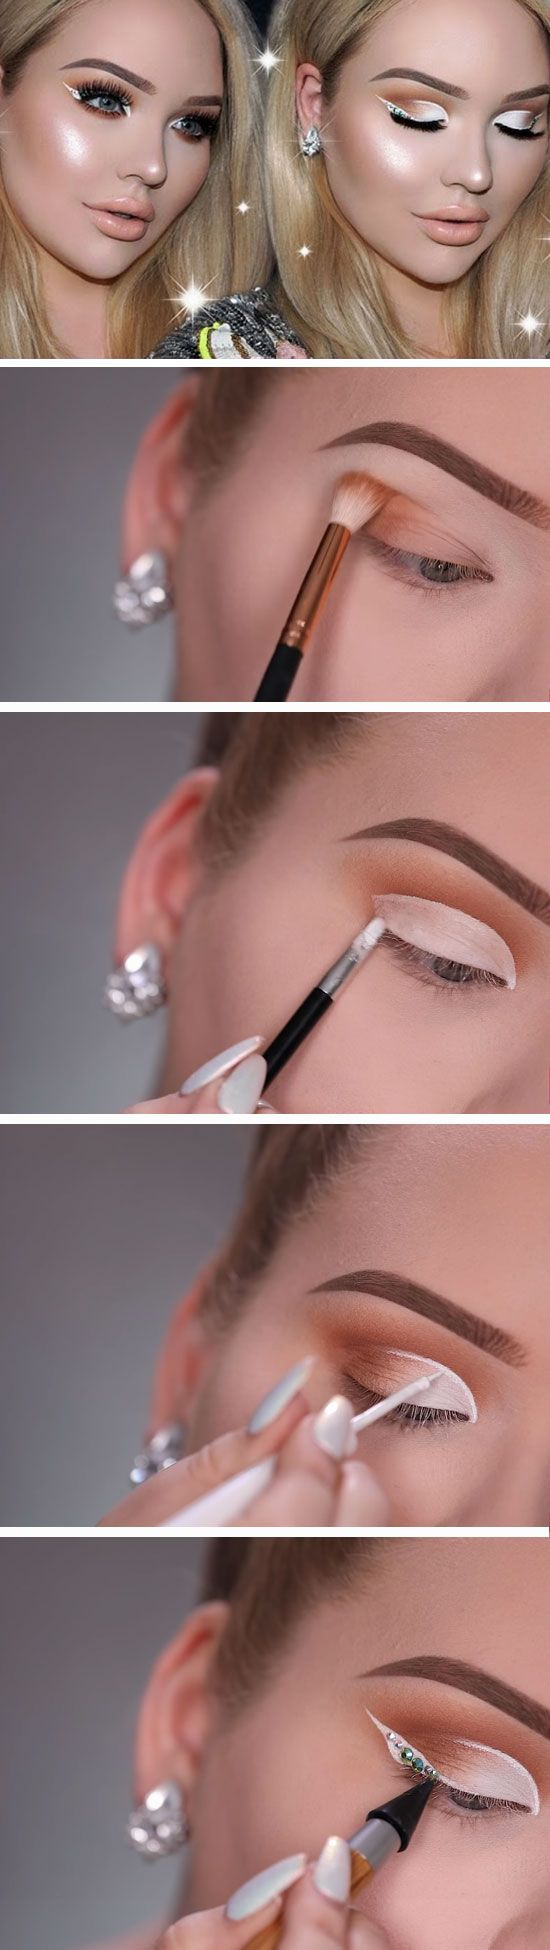 White Cut Crease & Diamond Eyeliner | Awesome Prom Makeup Ideas for Blue Eyes | DIY New Years Eve Makeup Looks Eyeshadows